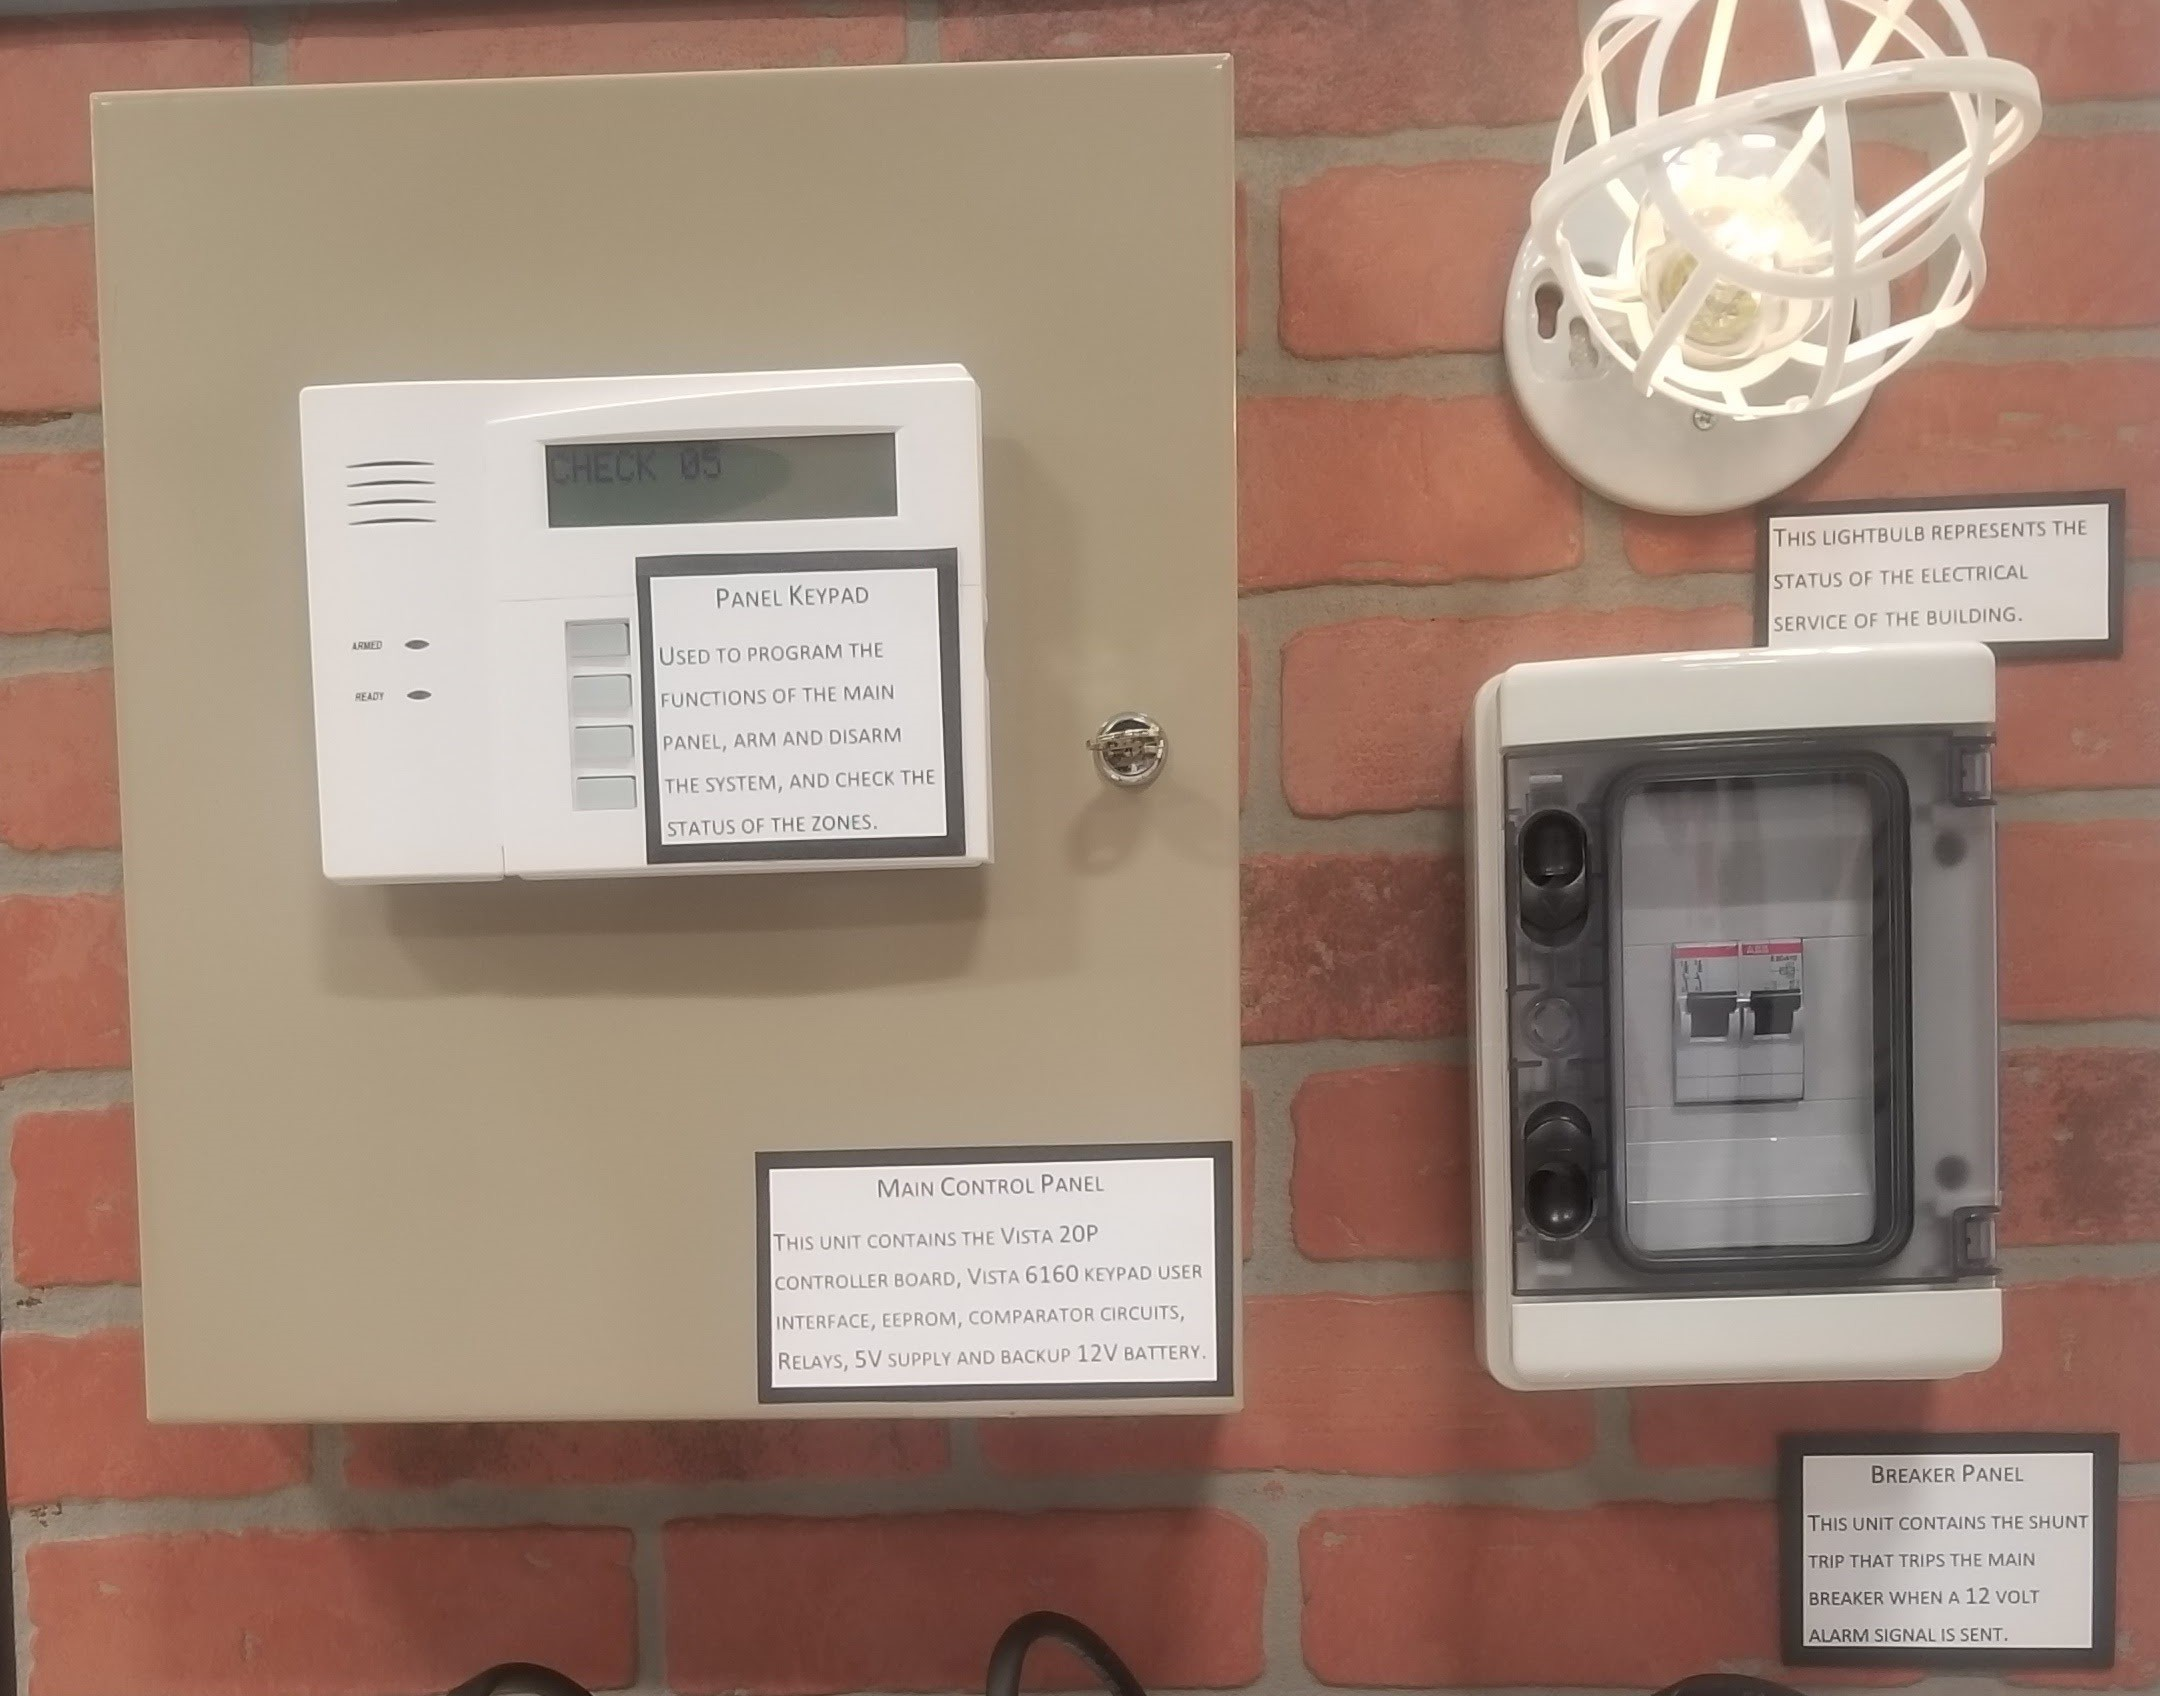 Flood Fault Circuit Interrupter Alarm Circuitphotointerrupter Module Controlcircuit Which Includes Both Audiovisual Alerts As Well An Communication To The Shunt Trip Disconnects Demonstrated By Light Bulb